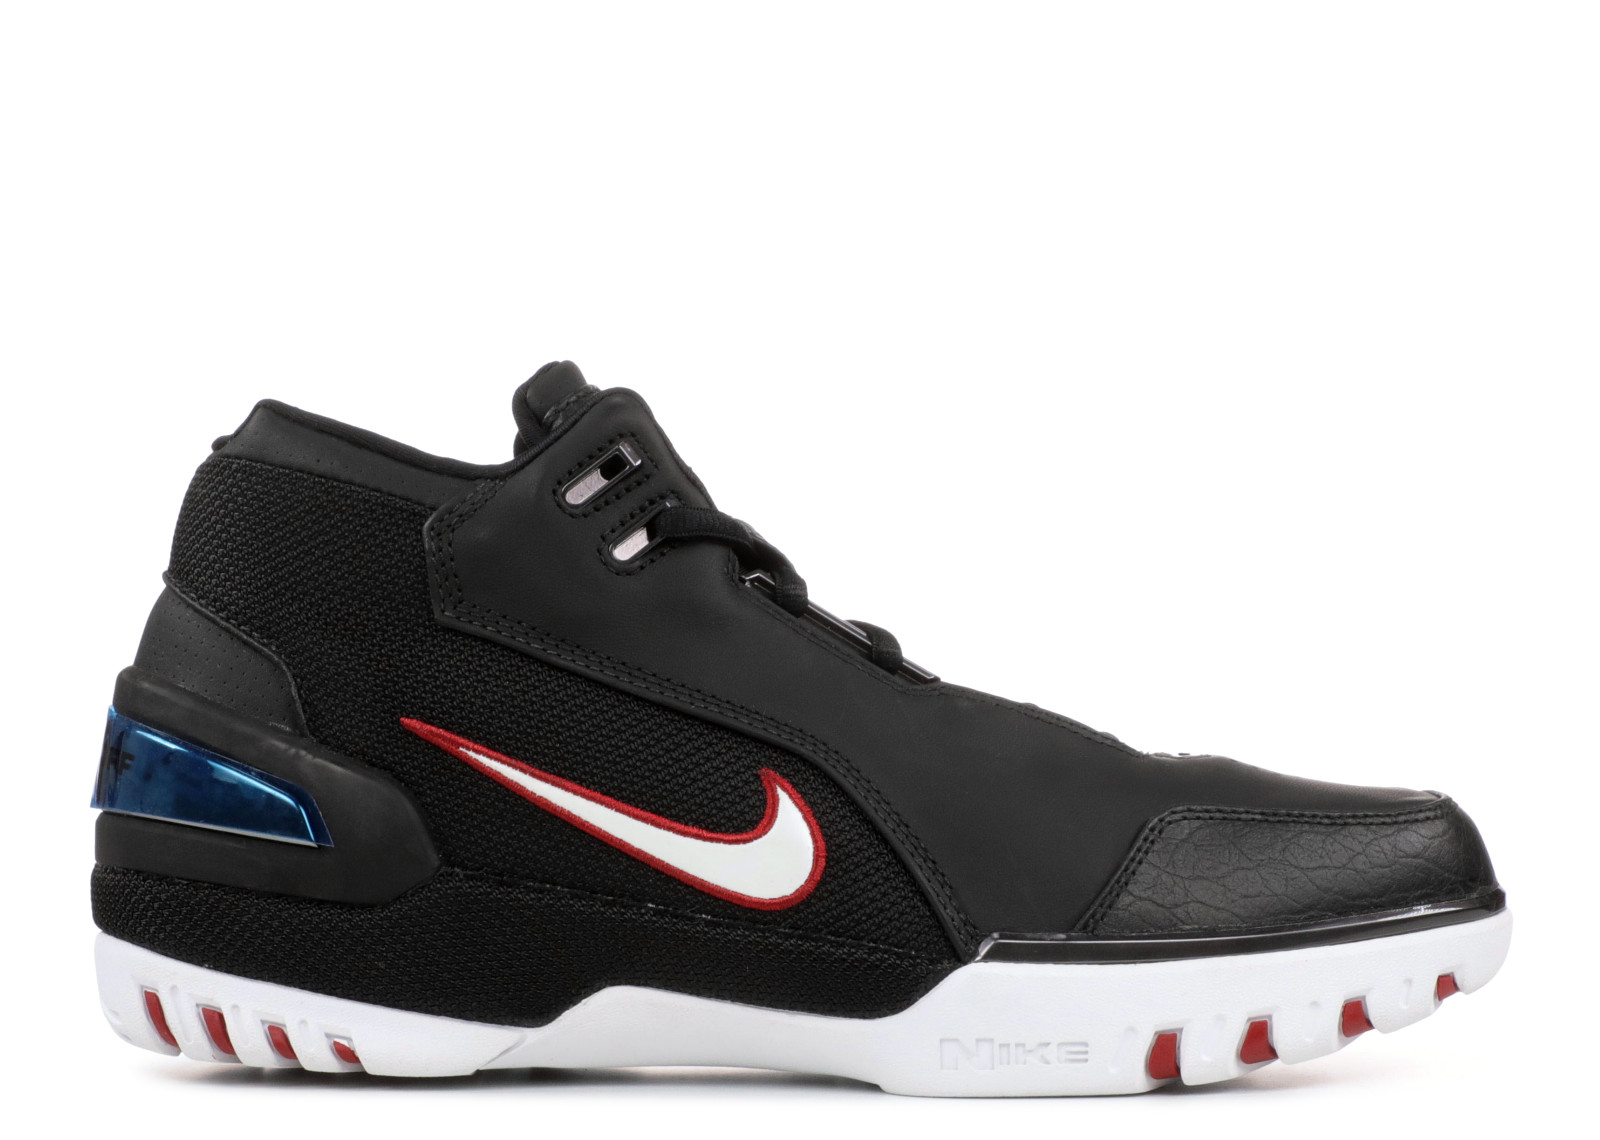 8e3921a0883 The Best LeBron James Shoes After 15 Years